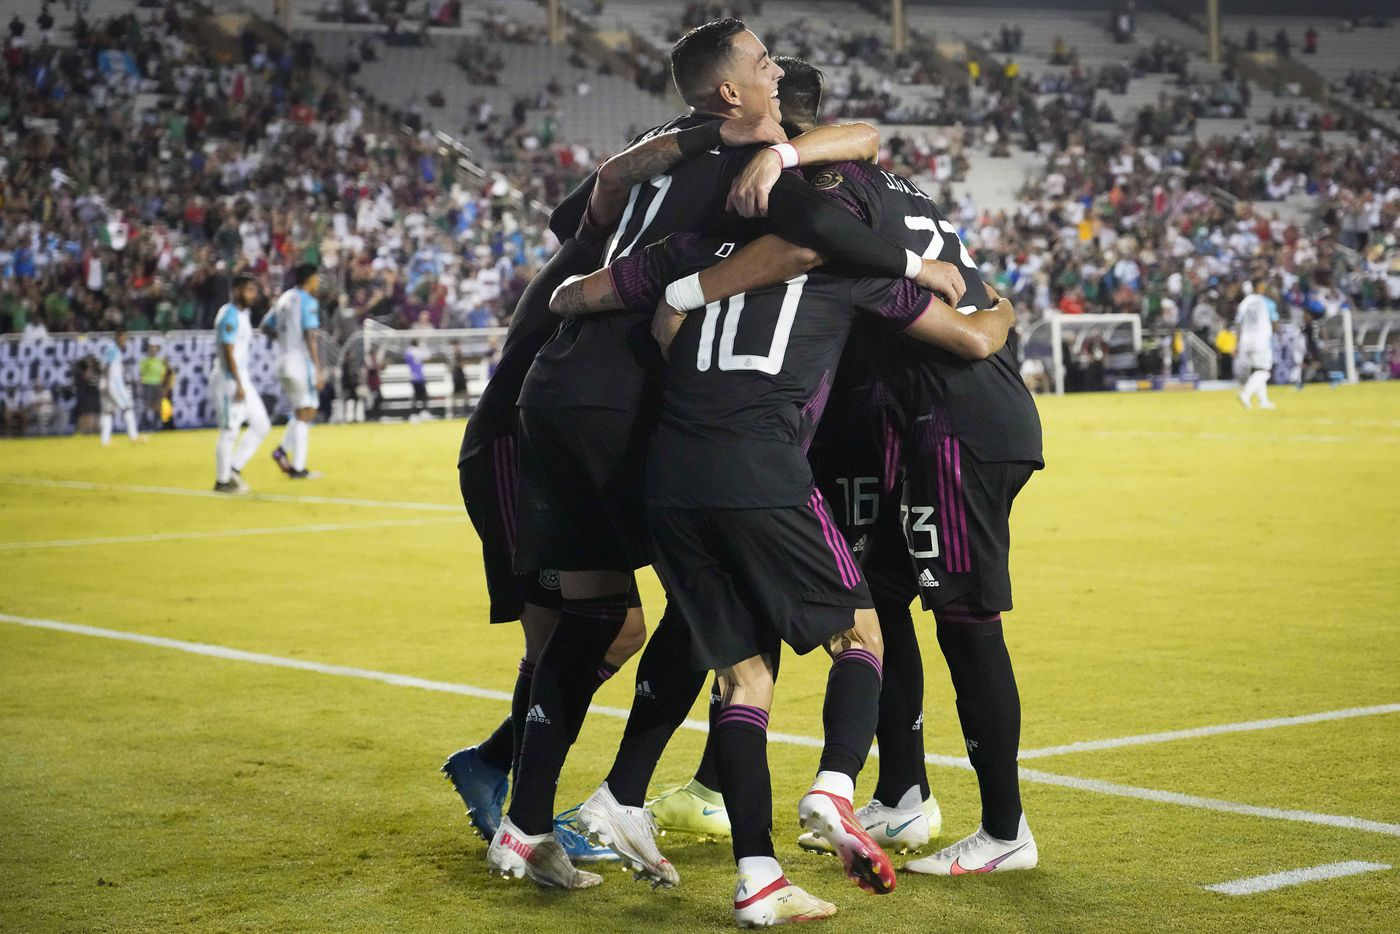 Mexico forward Rogelio Funes Mori (11) joins teammates in celebrating a goal by midfielder Orbelin Pineda (10) during the second half of a CONCACAF Gold Cup Group A soccer match against Guatemala at the Cotton Bowl on Wednesday, July 14, 2021, in Dallas.